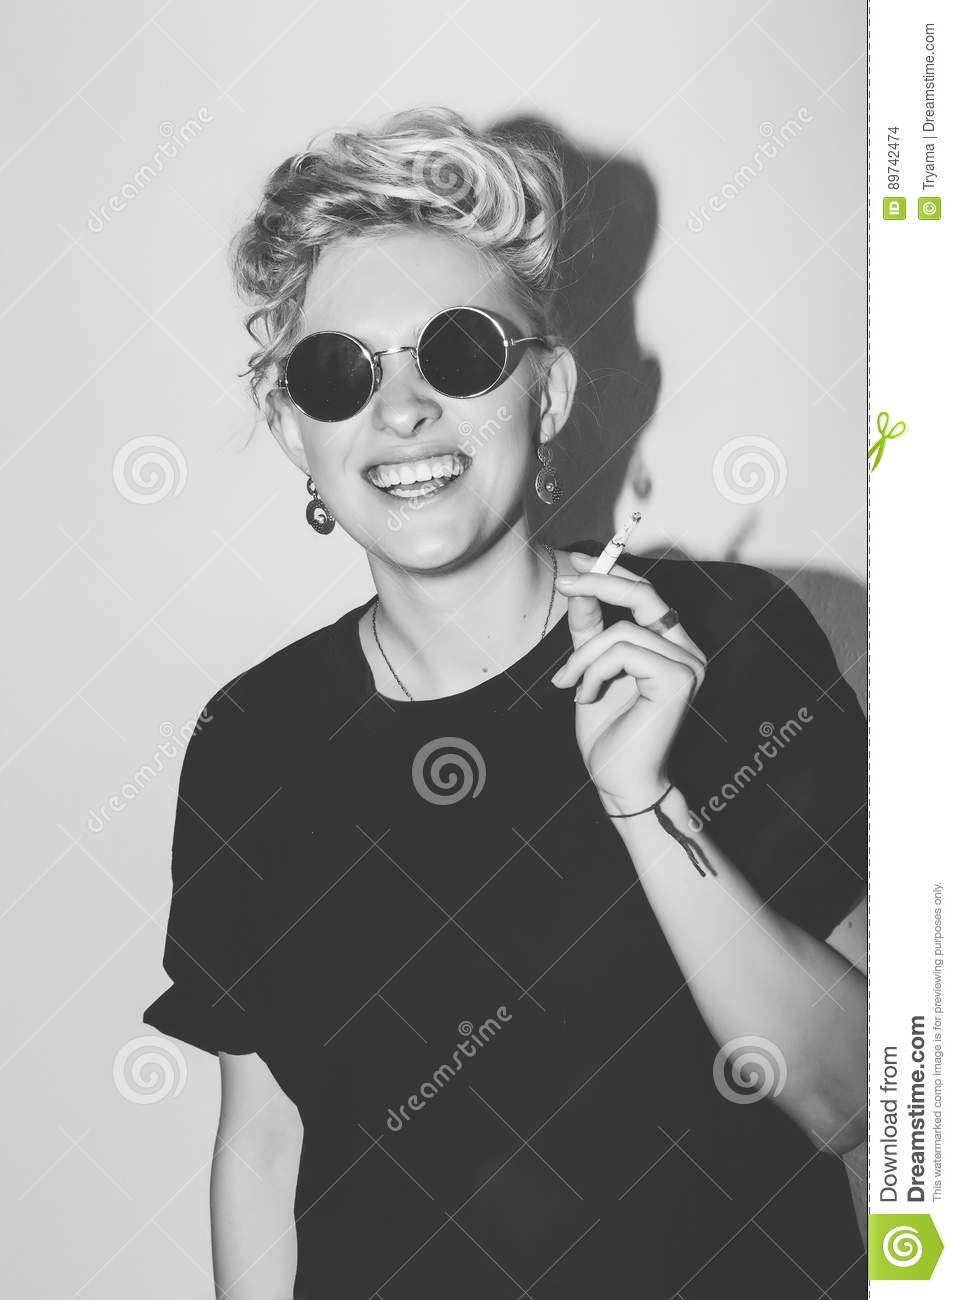 fd6c59efc80 Stylish fashion blonde bad girl in a black t-shirt and rock sunglasses.  Dangerous rocky emotional woman. Black and white toned. White background